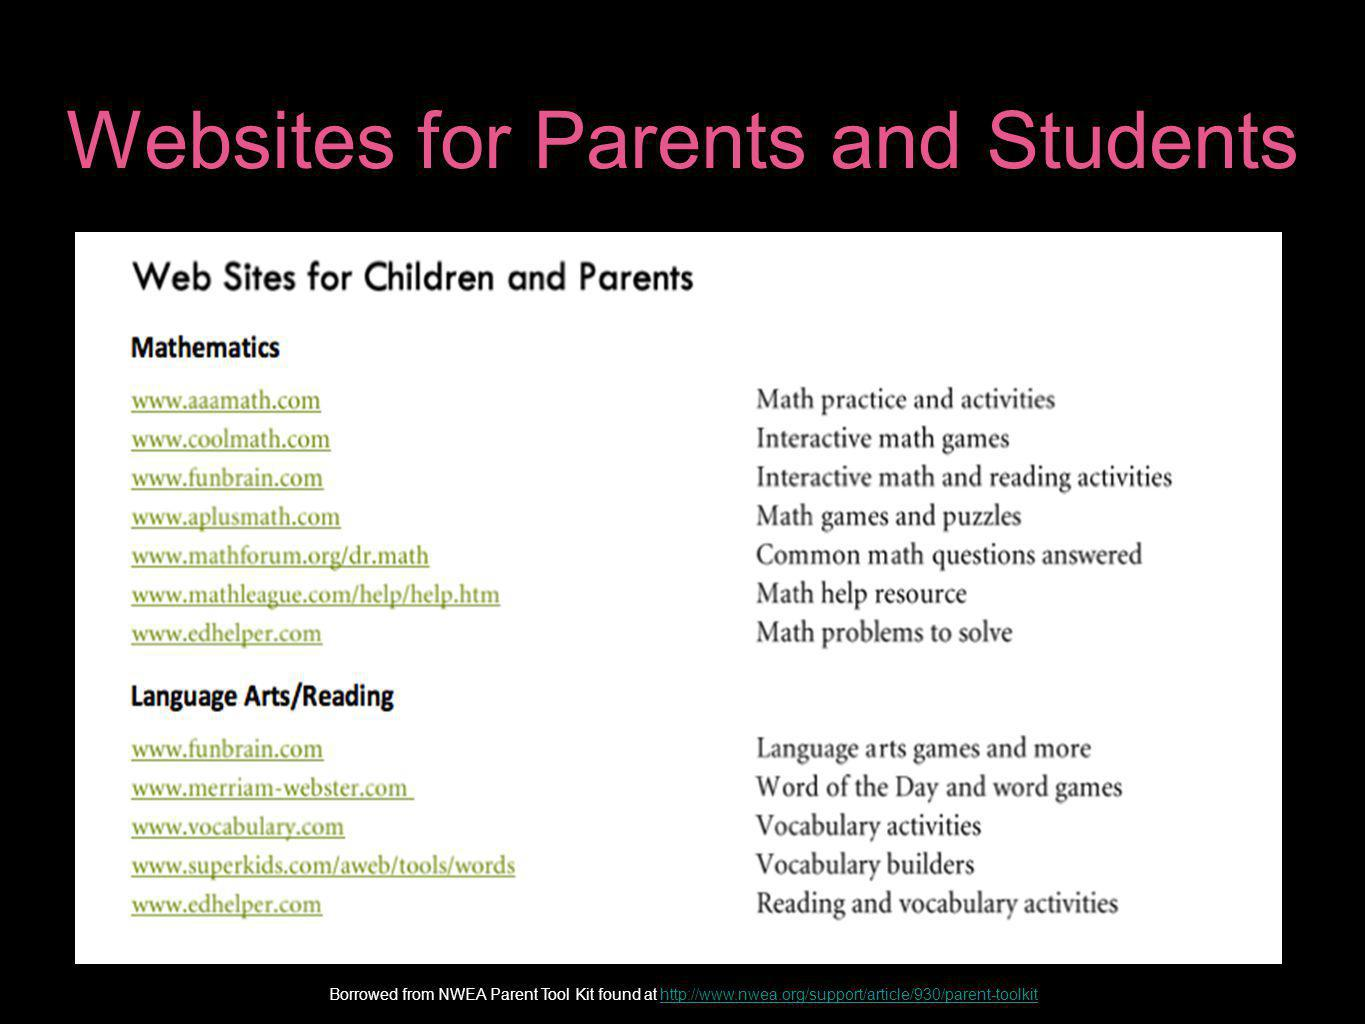 Websites for Parents and Students